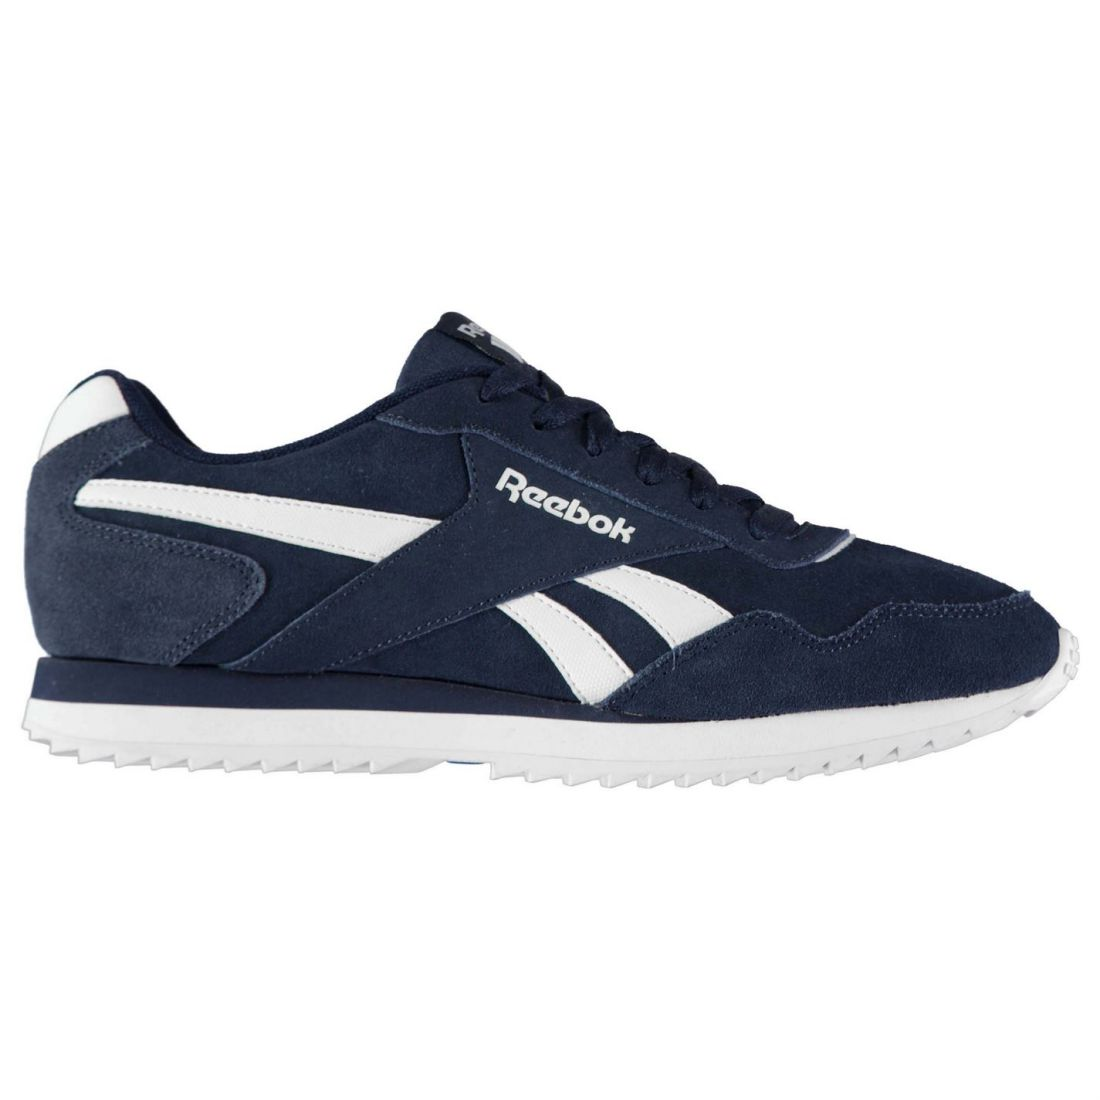 Reebok Mens Royal Glide Ripple Suede Trainers Sneakers shoes Lace Up Panelled